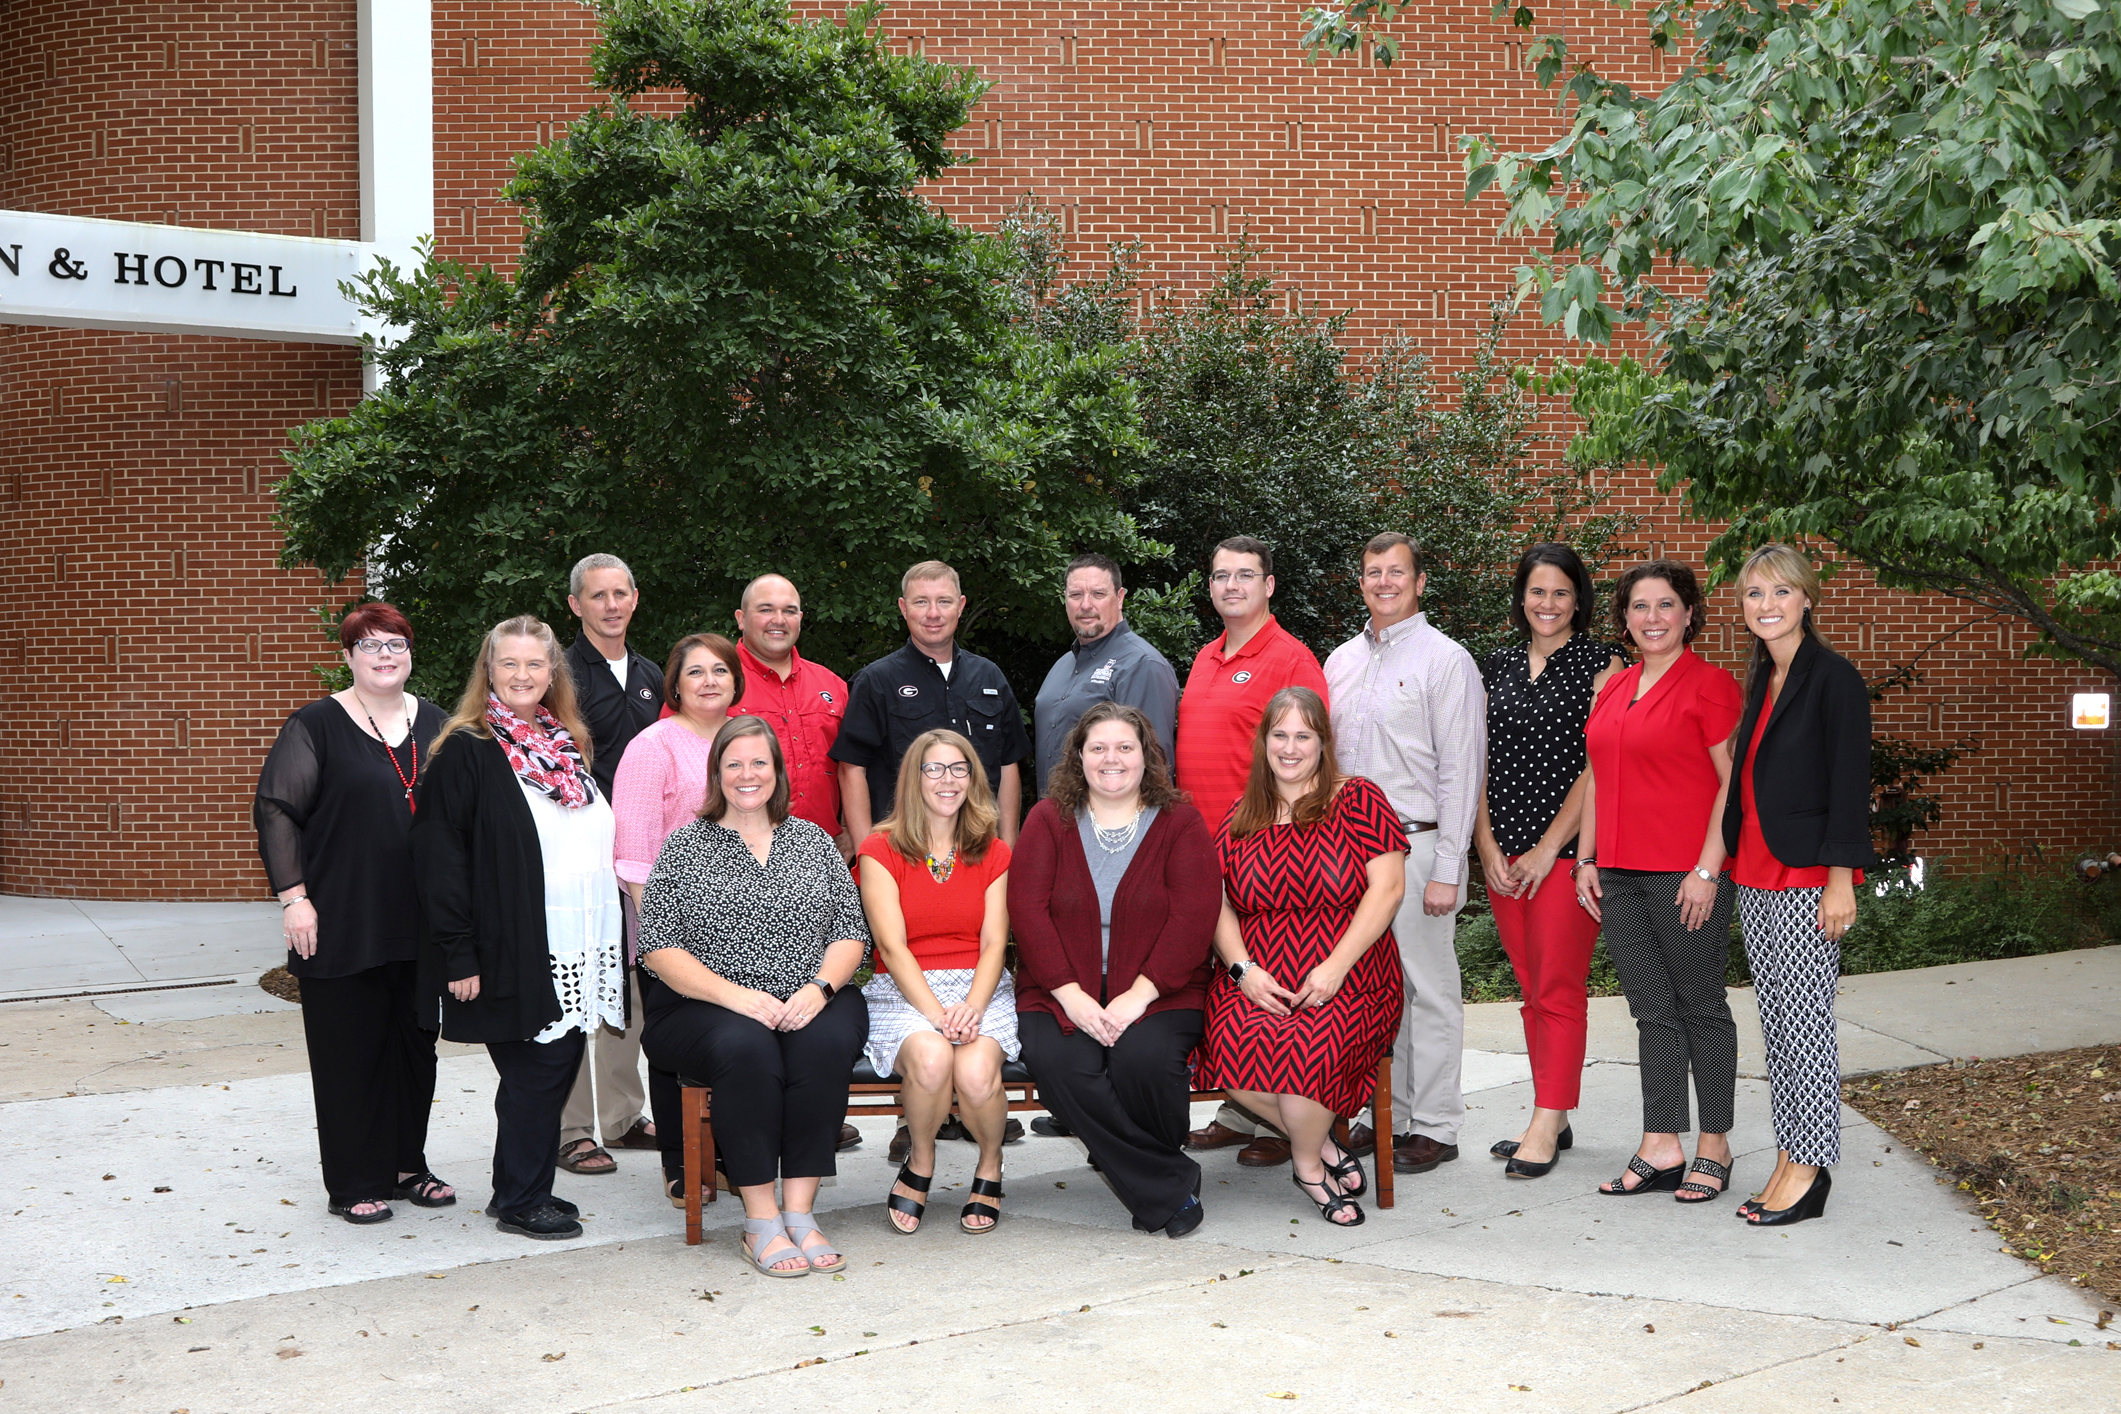 University of Georgia Cooperative Extension employees chosen for the 2018-19 UGA Extension Academy for Professional Excellence attended their first of three leadership institutes Sept. 4-6 in Athens, Georgia. The internal program is aimed at developing the next generation of UGA Extension leaders.